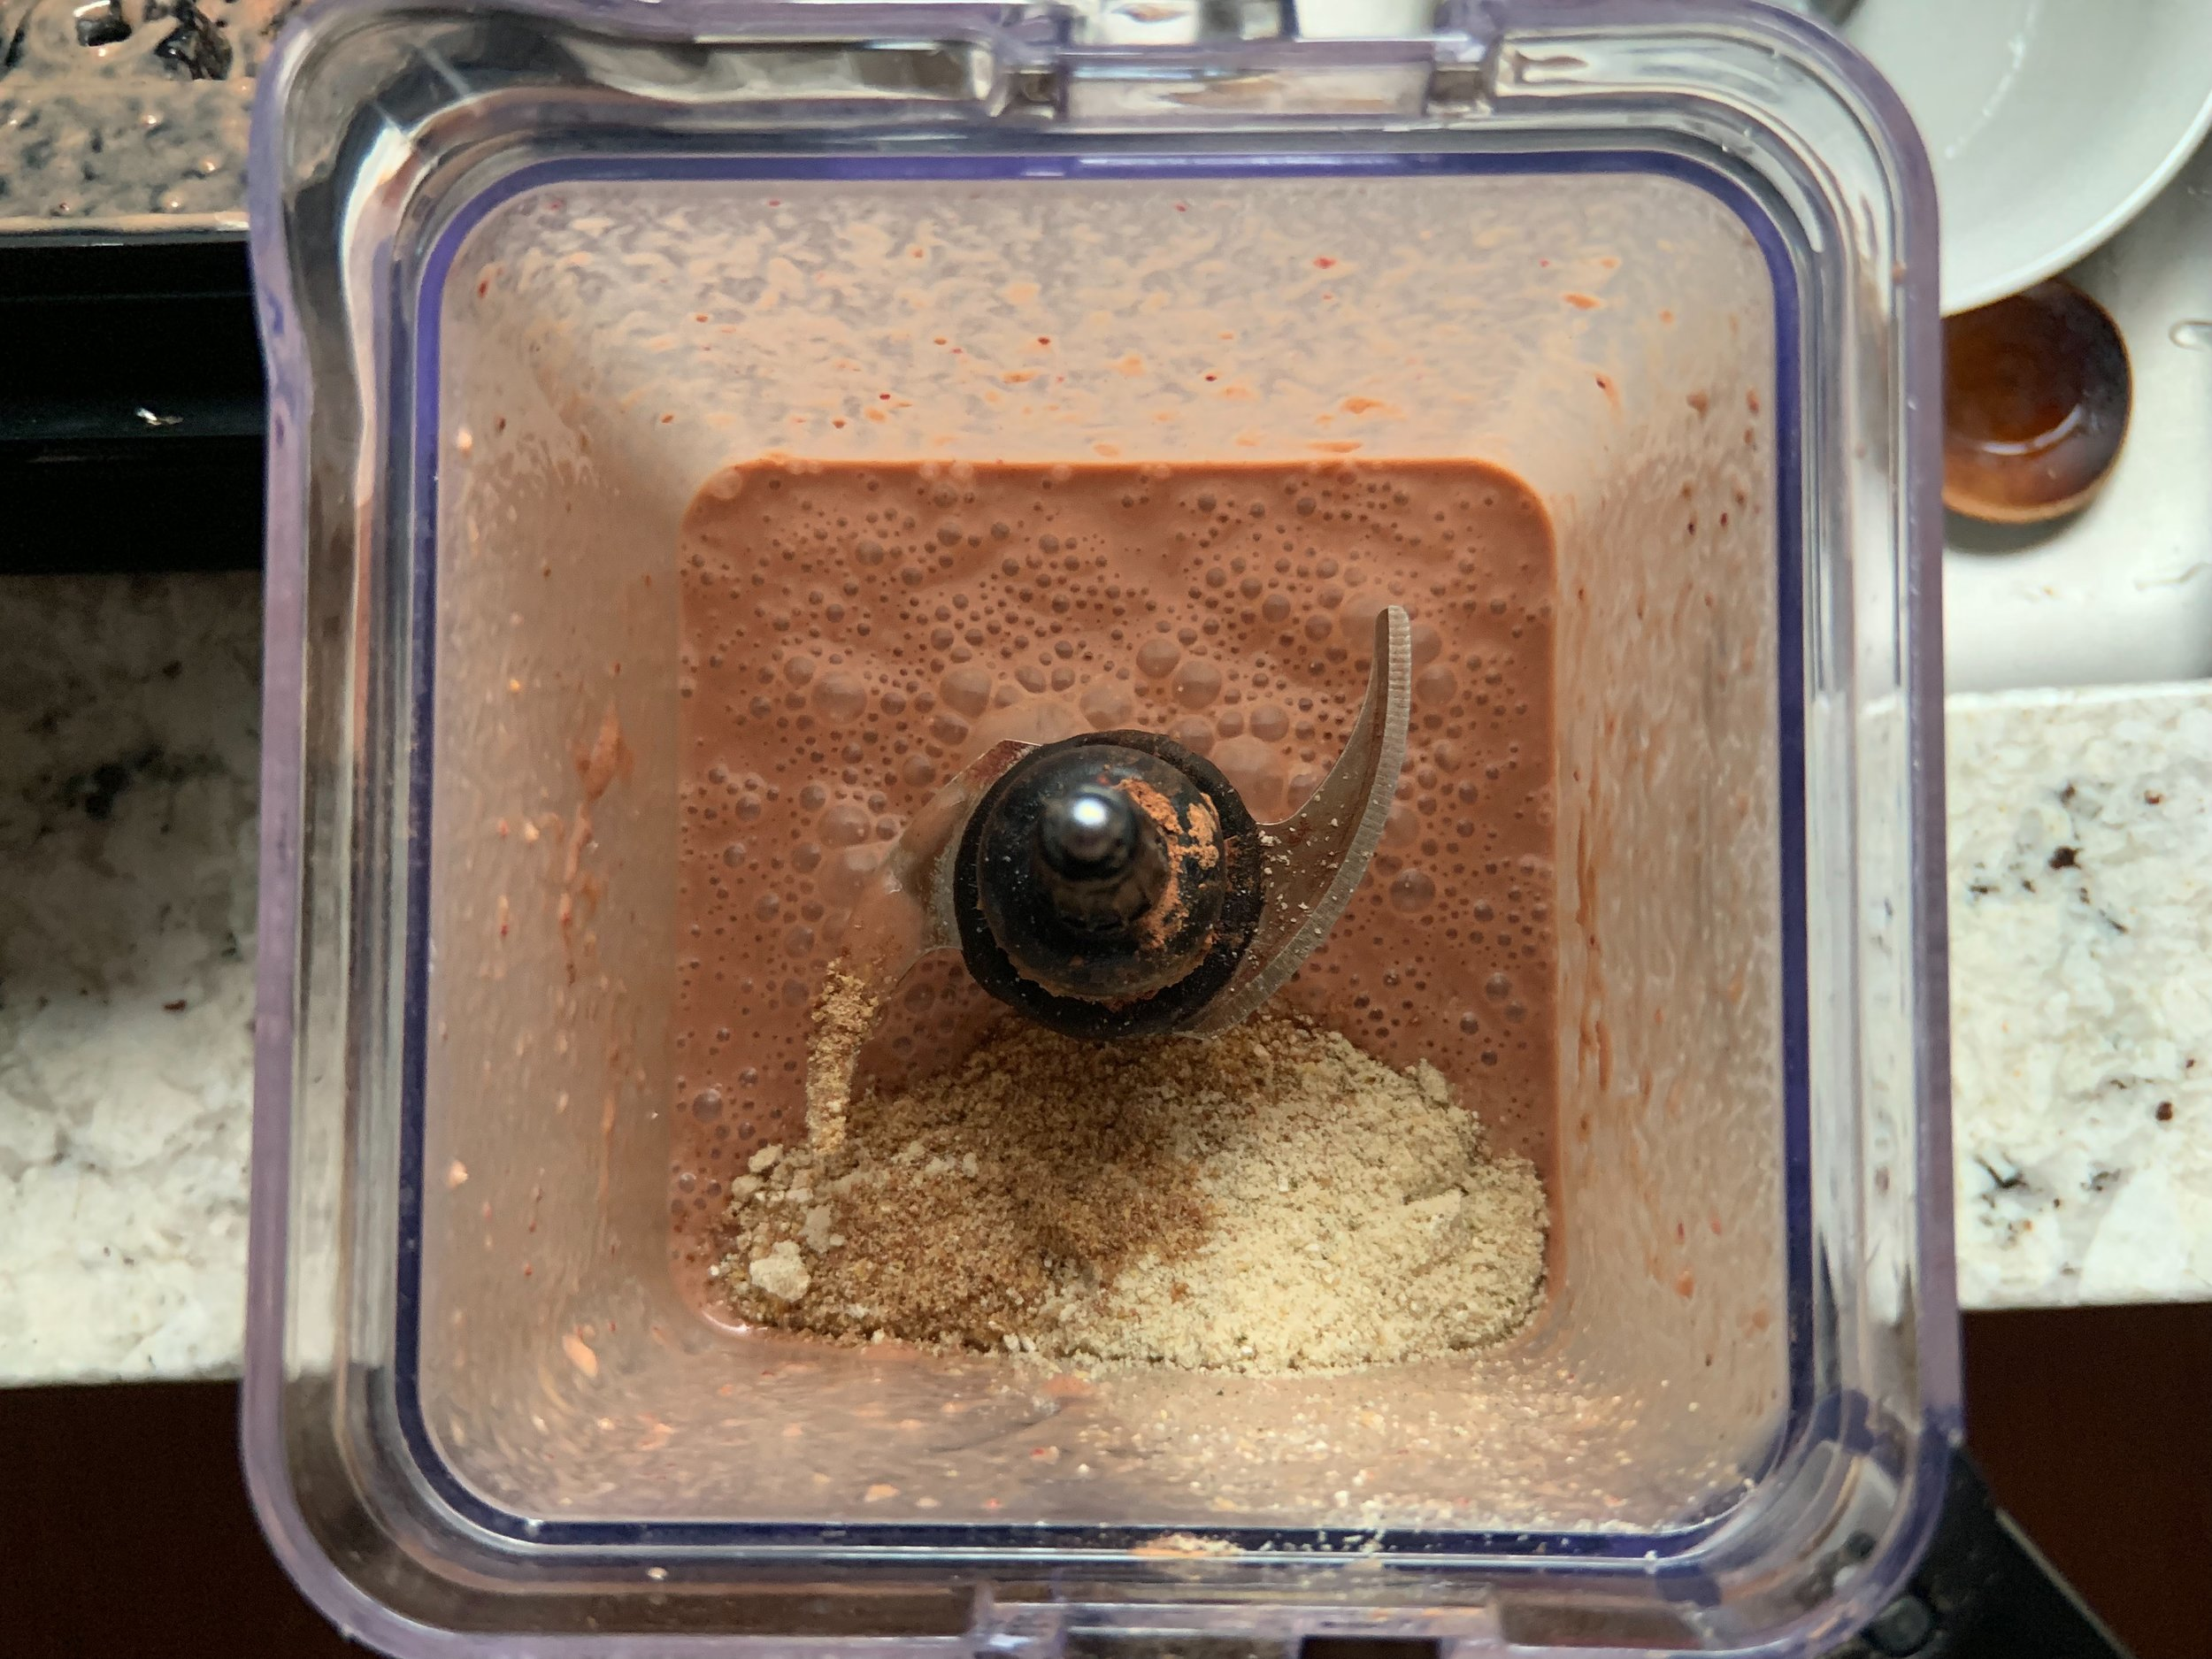 Ground and added to the smoothie